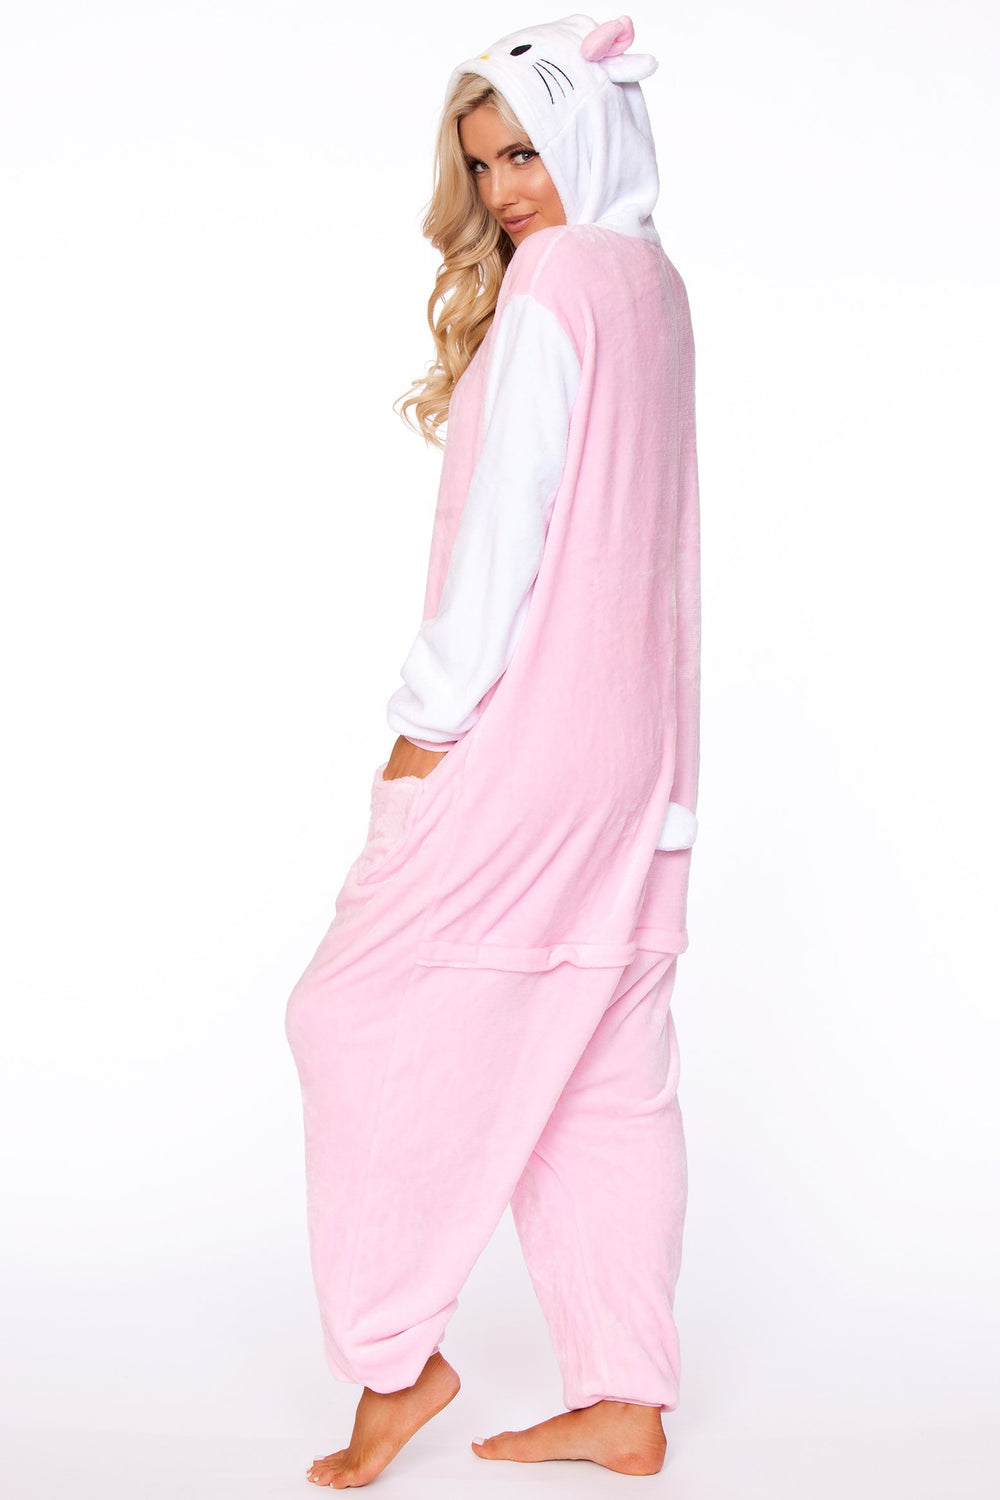 C1816 KITTY CAT Adult Onesie